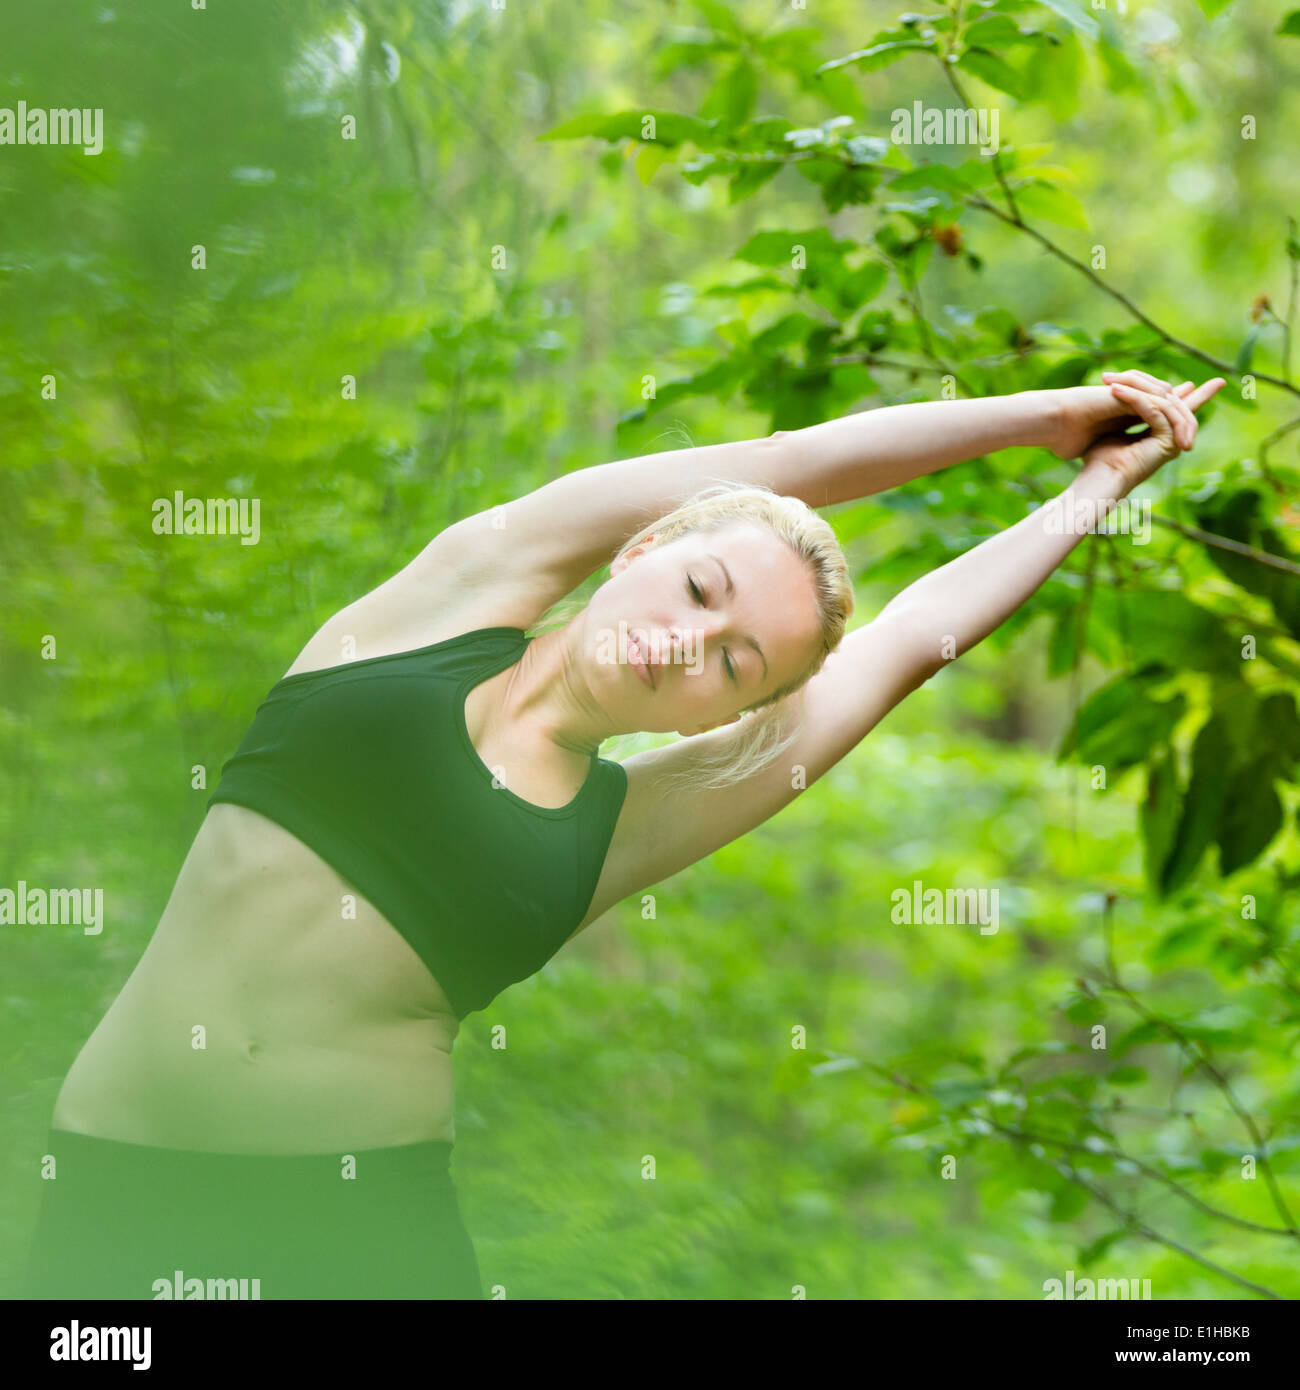 Lady practicing yoga in the nature. - Stock Image